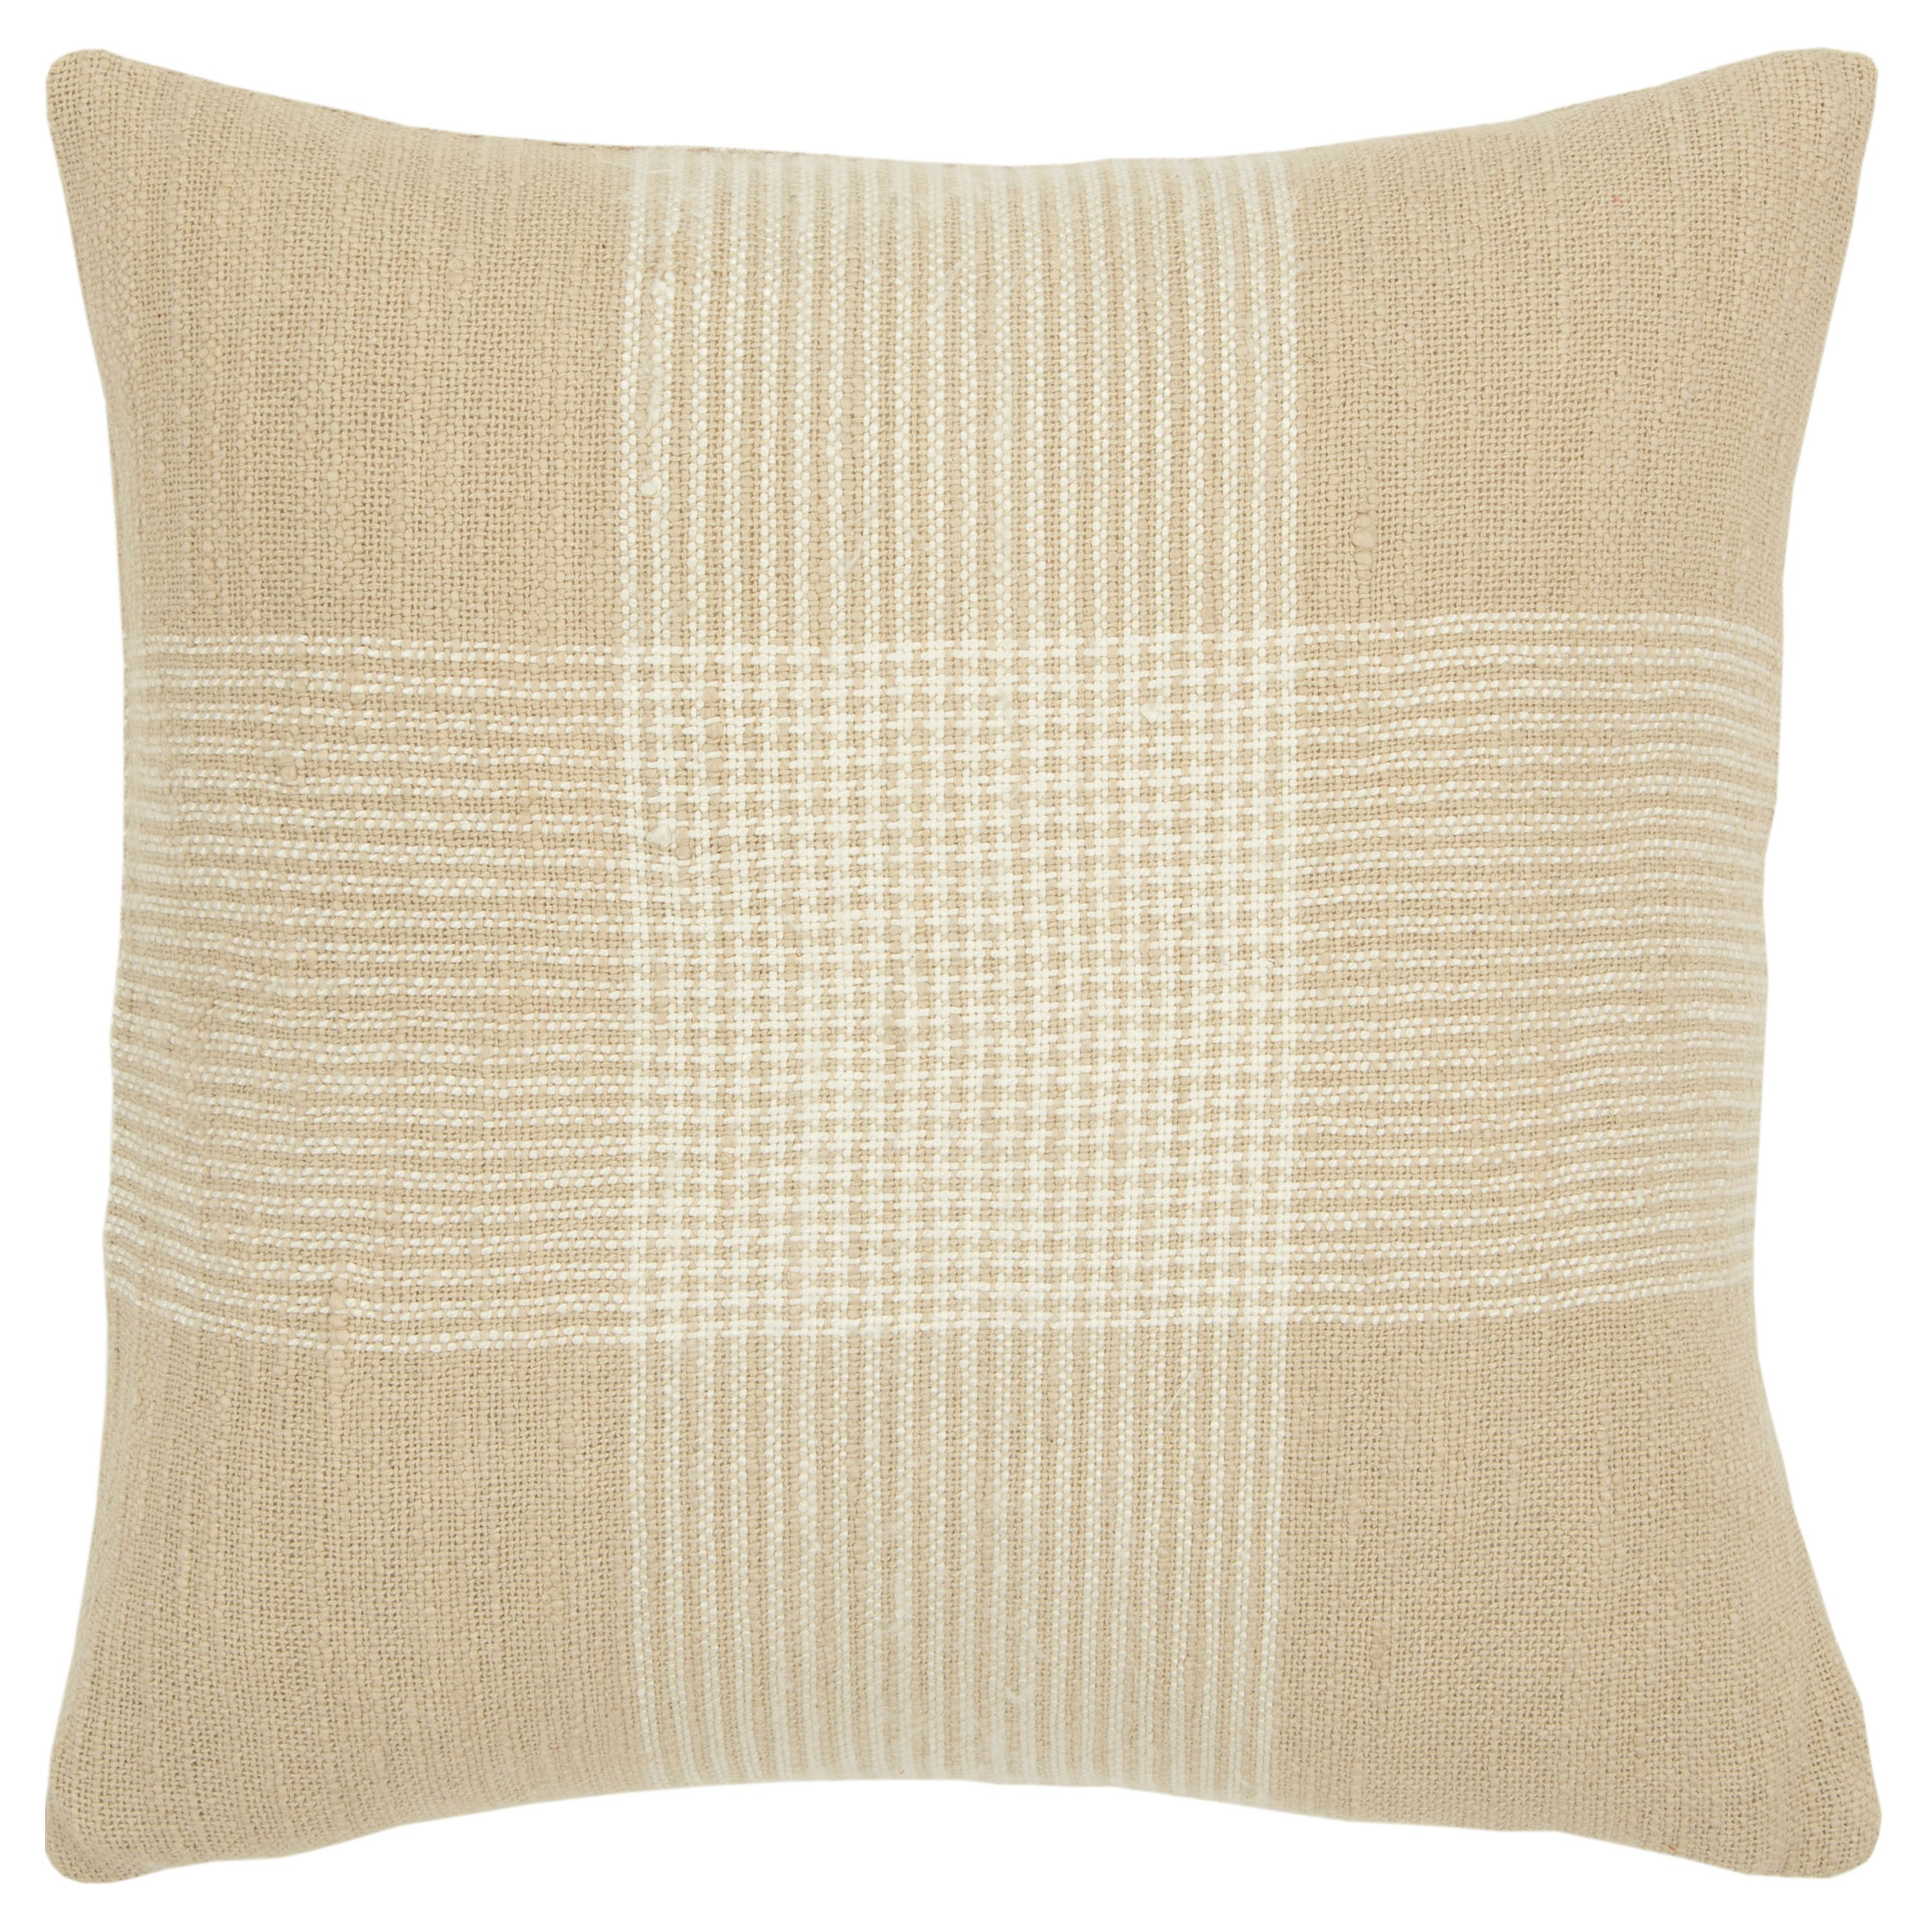 "Rizzy Home Decorative Down Filled Throw Pillow Plaid 20""X20"" Natural"